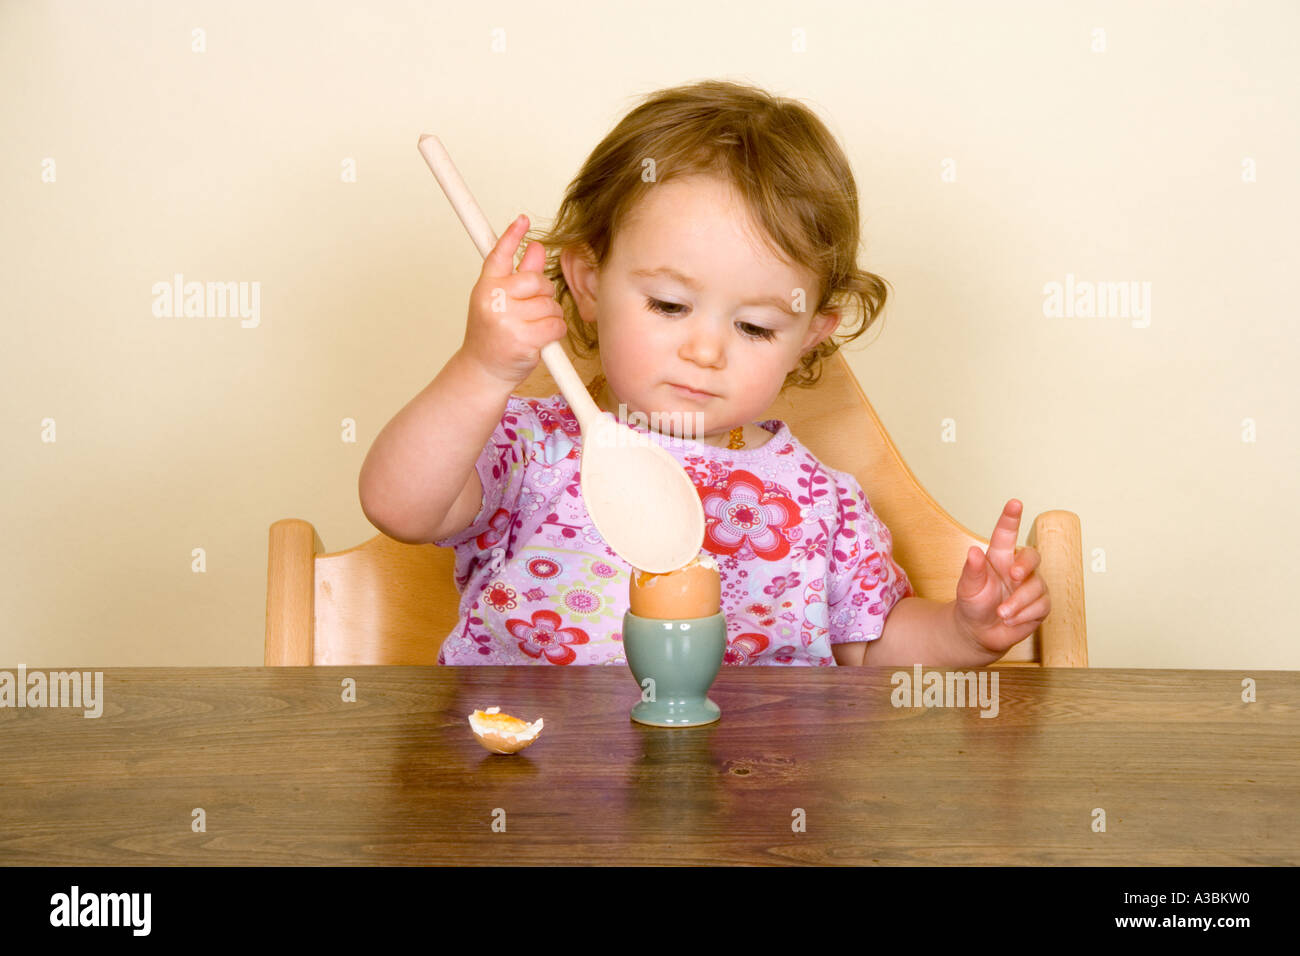 Baby eating boiled egg in high chair Stock Photo Royalty